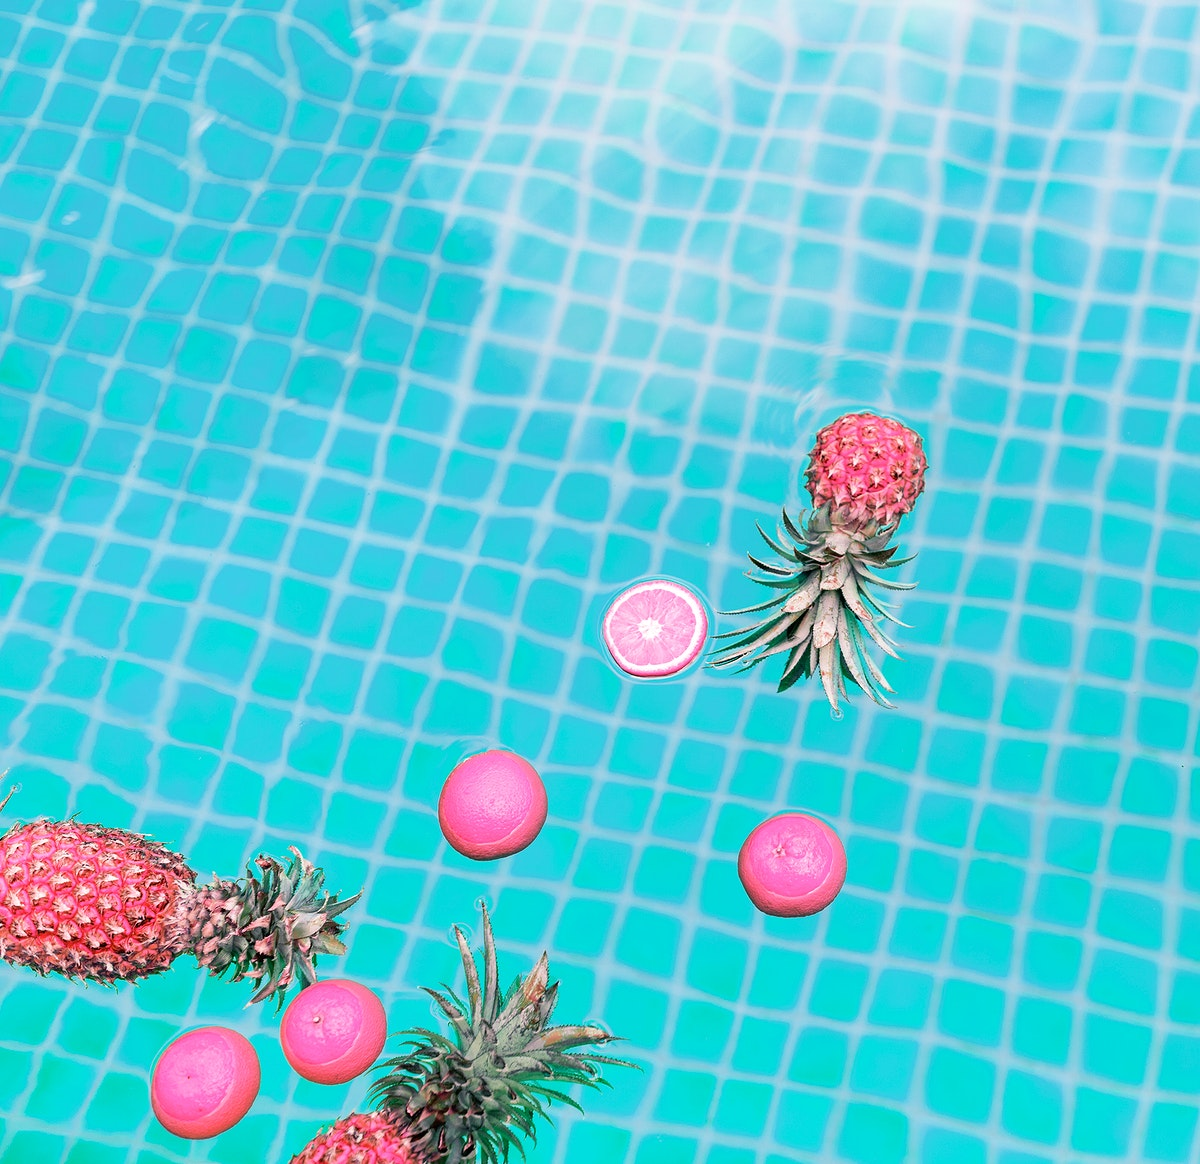 Aerial view of pineapple and oranges floating in a swimming pool